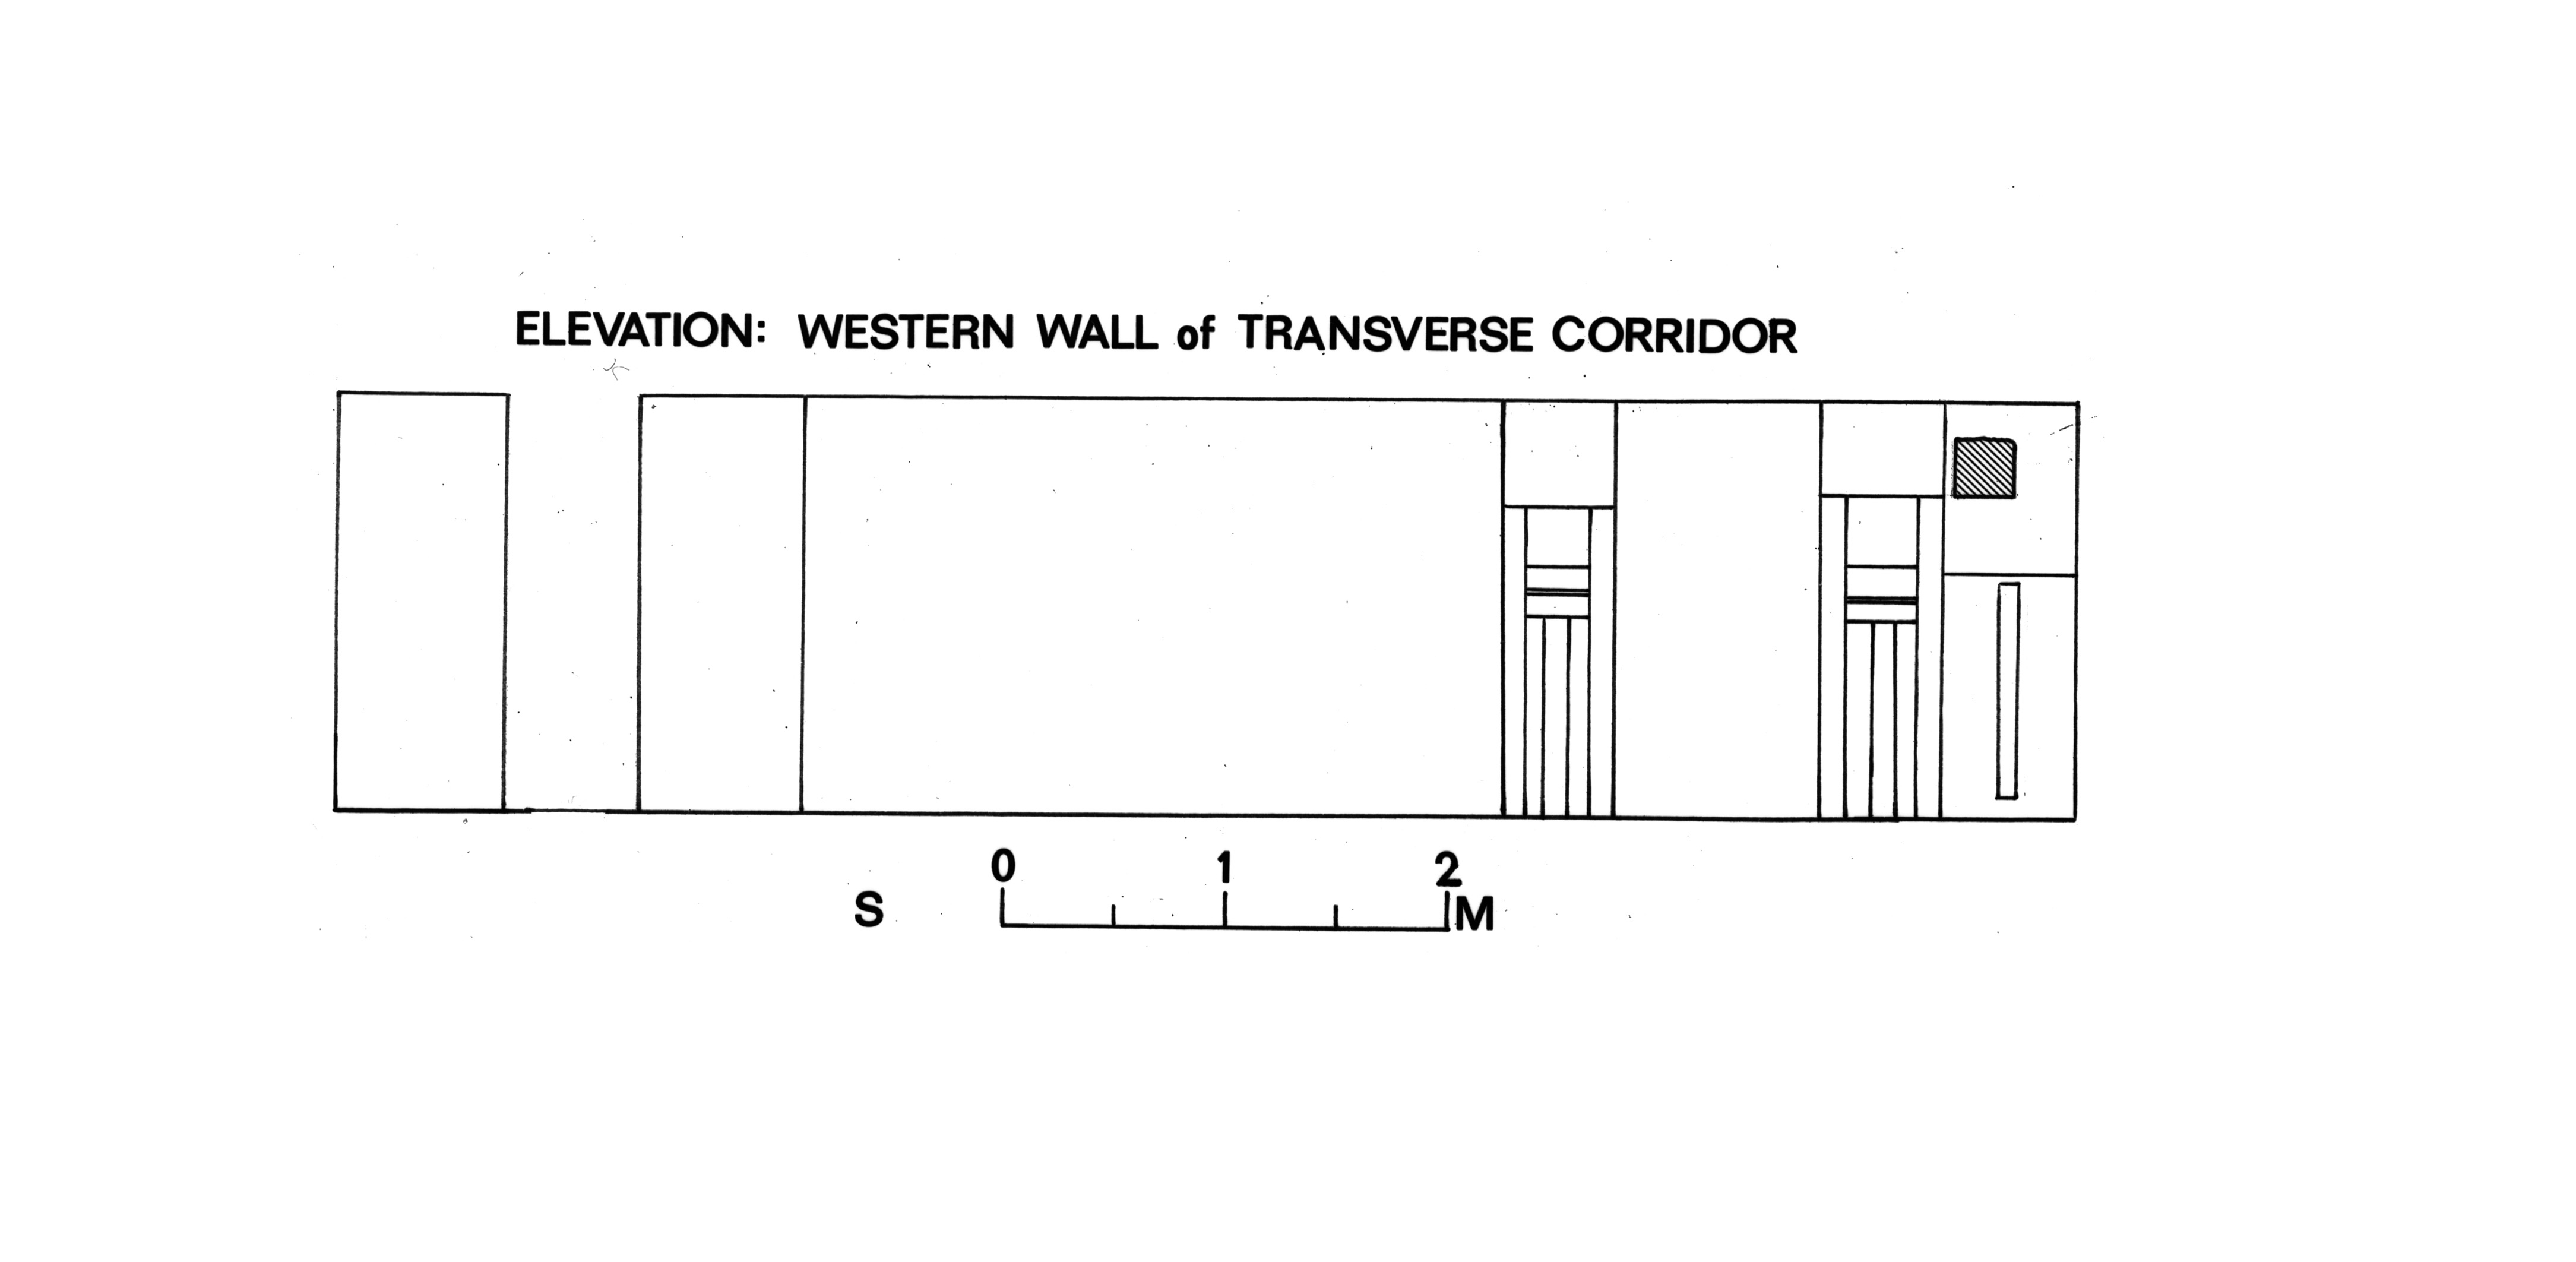 Maps and plans: D 20, Plan of transverse corridor